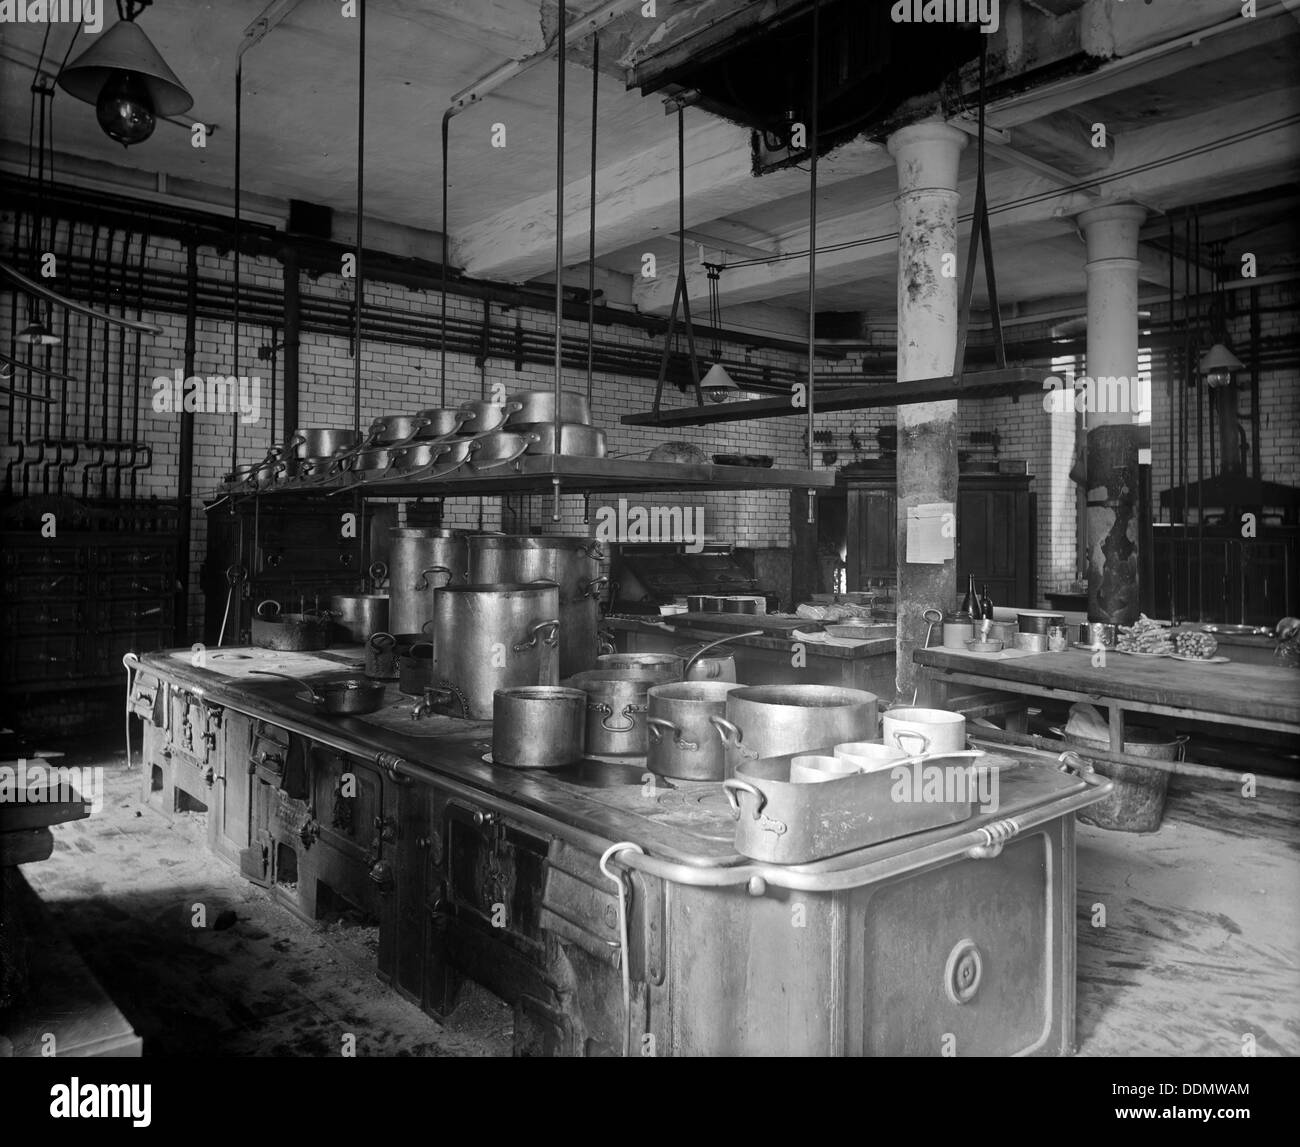 The Savoy Hotel Kitchen, The Strand, Westminster, London